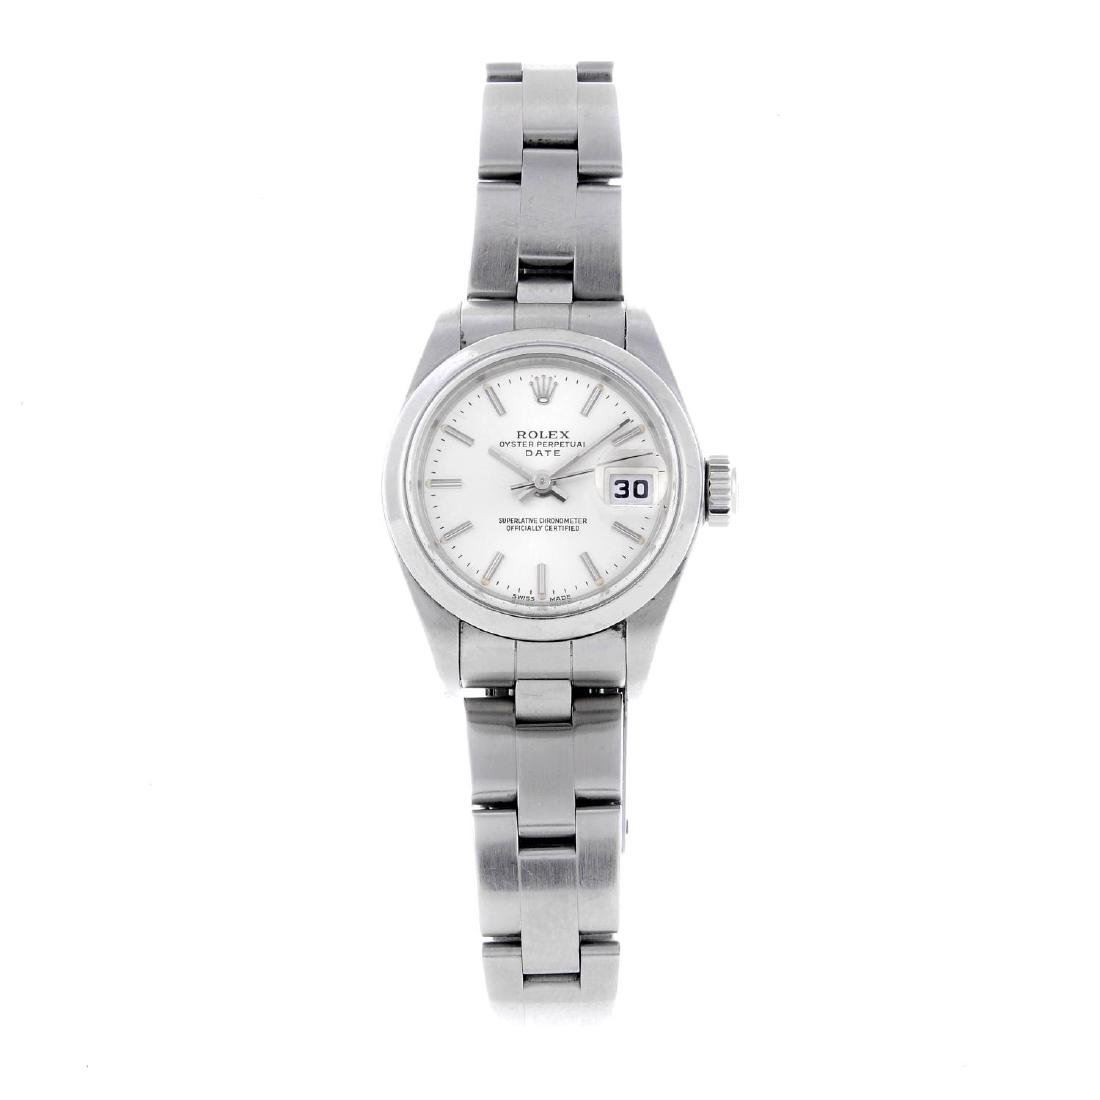 ROLEX - a lady's Oyster Perpetual Date bracelet watch.